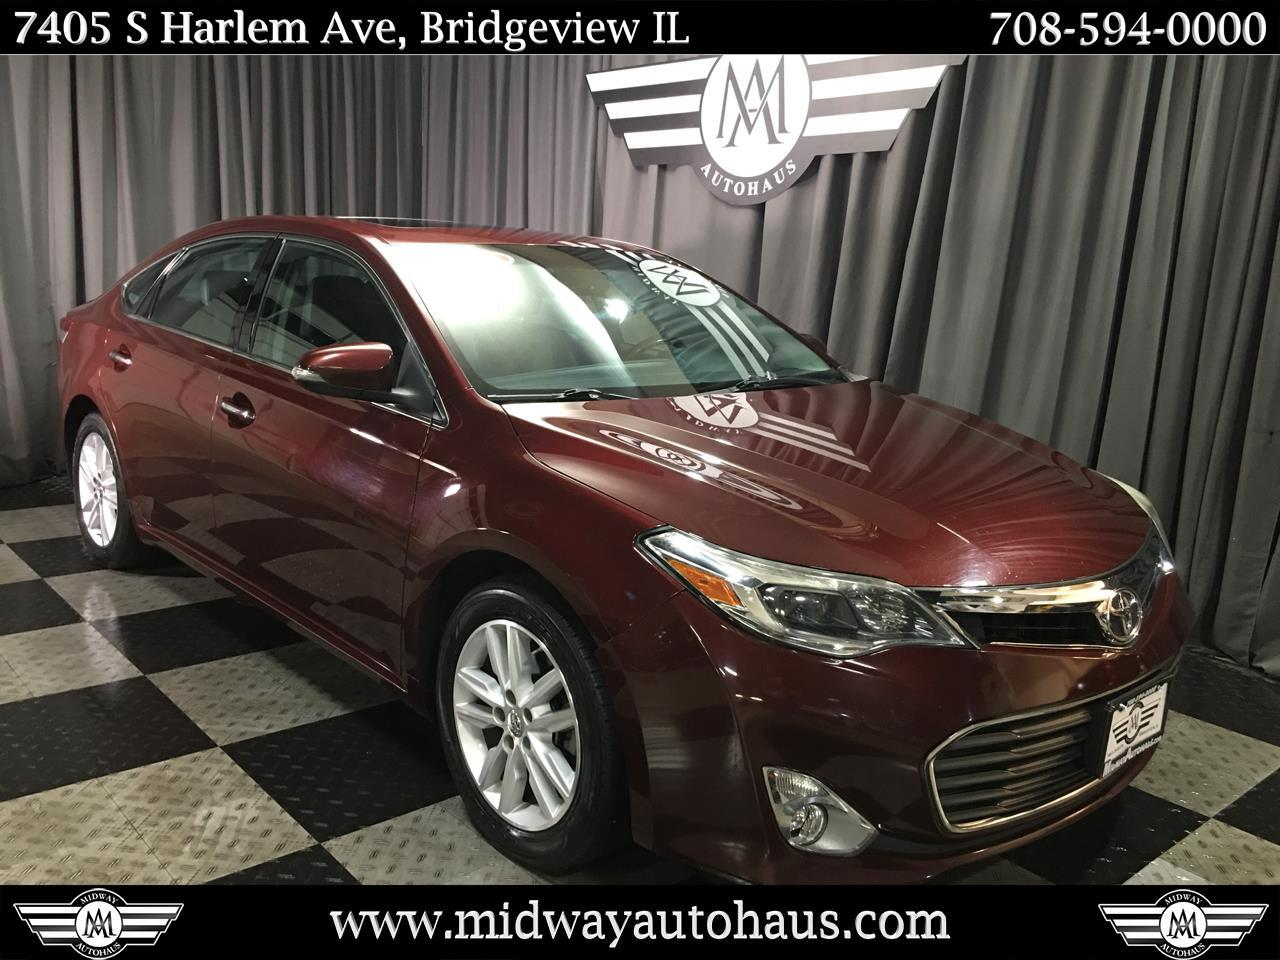 Pre-Owned 2013 Toyota Avalon 4dr Sdn XLE (Natl)